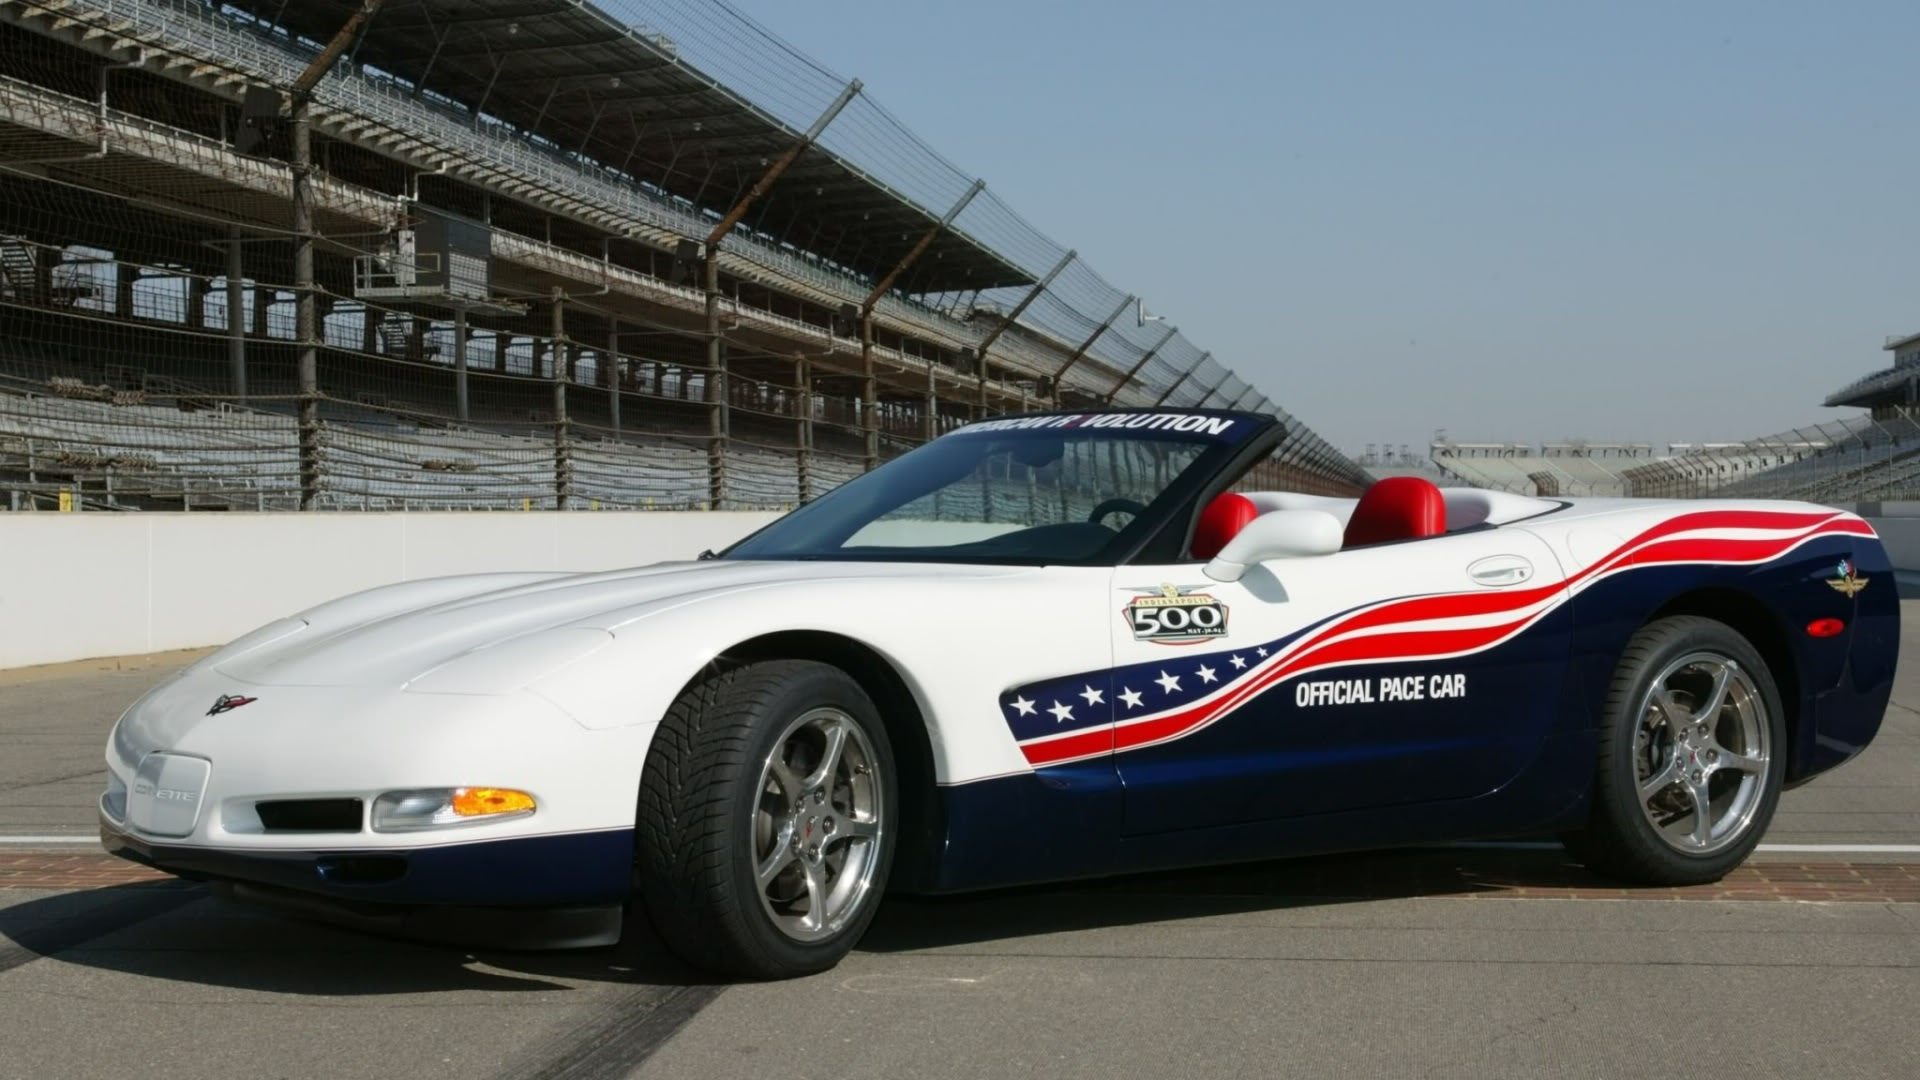 2004 Indy 500 Pace Car